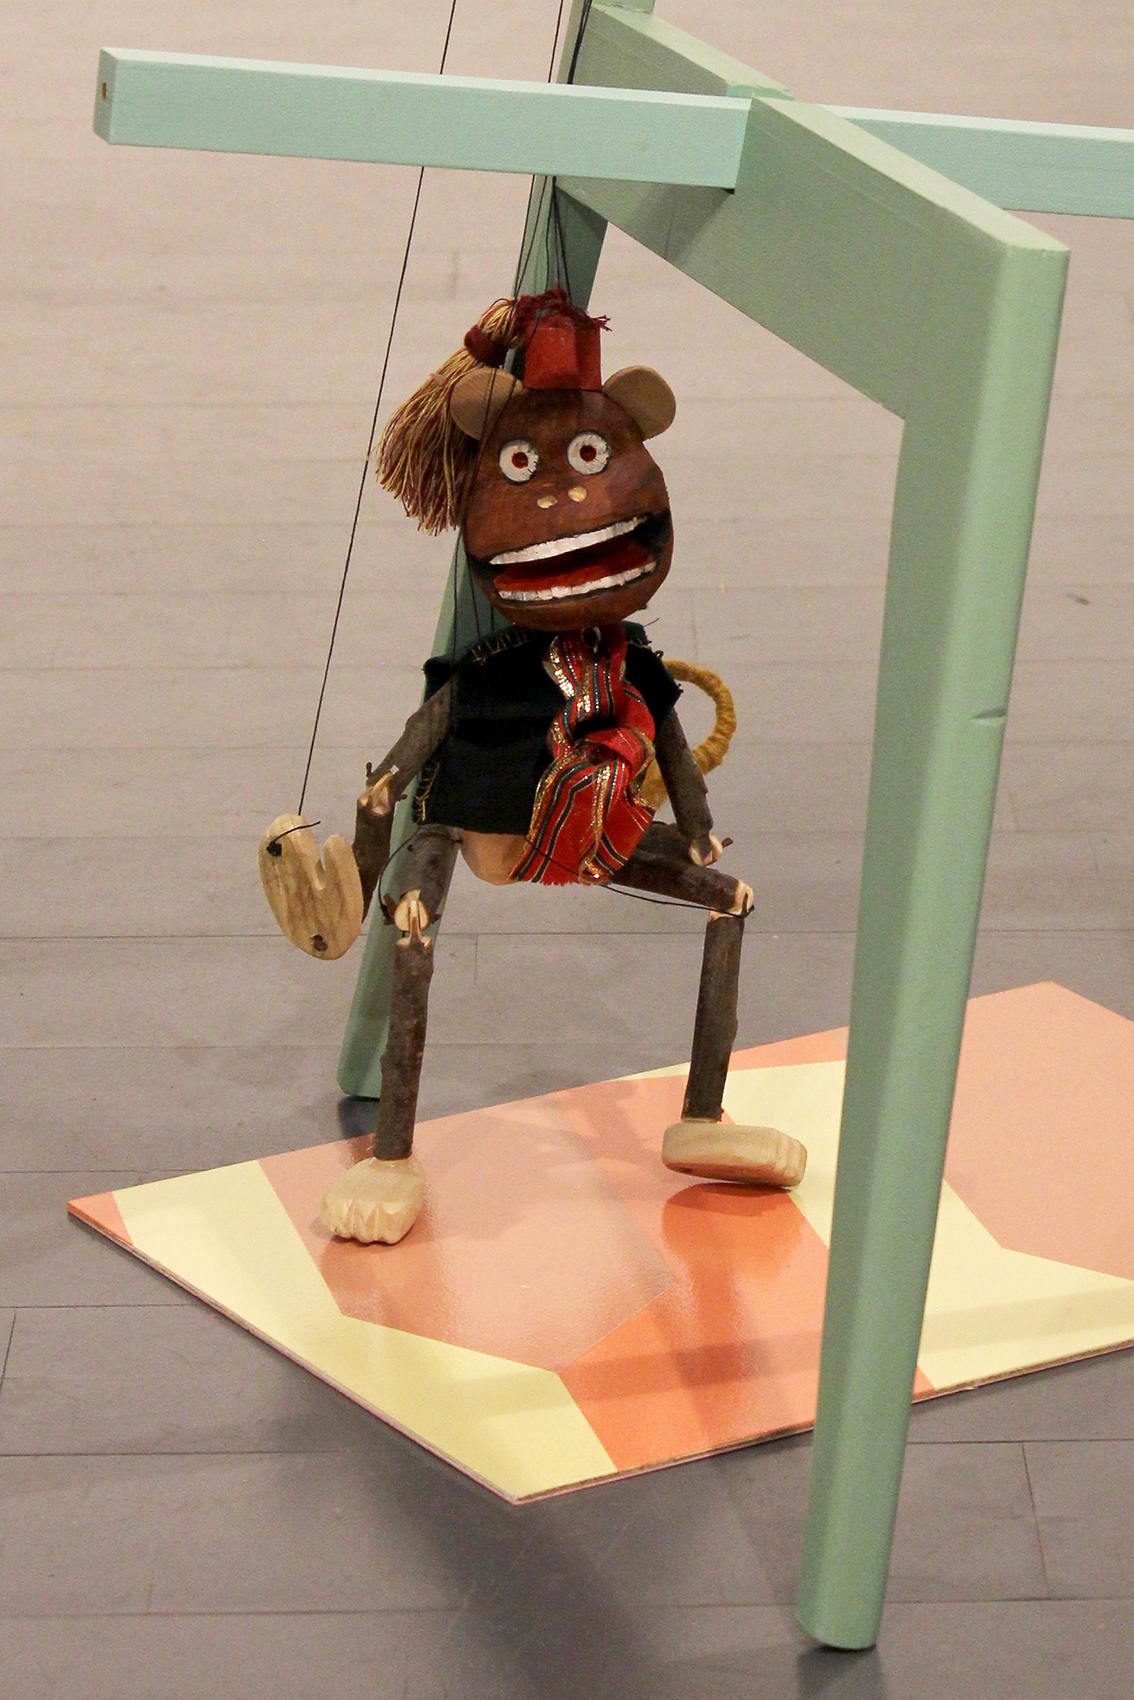 detail: Danny Holcroft 'Monkey Puppet' Monkey puppet with chair, mixed media 80 x 60 x 50cm 2016 © Cultural Documents